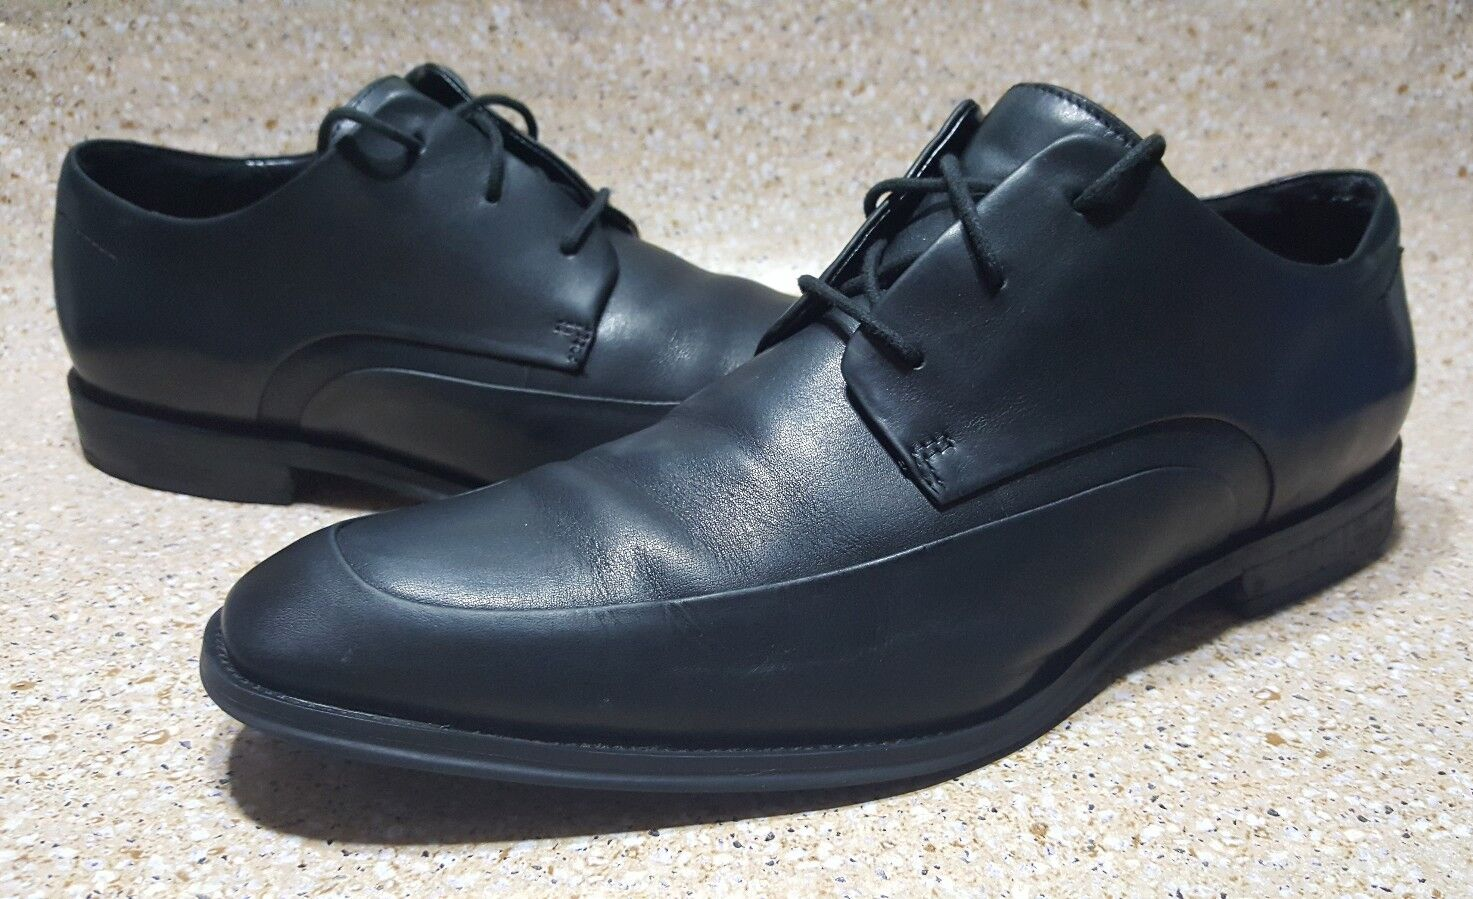 KENNETH COLE SILVER TECHNOLOGY BLACK LEATHER OXFORD LACE UP MEN'S SHOES 11.5 M